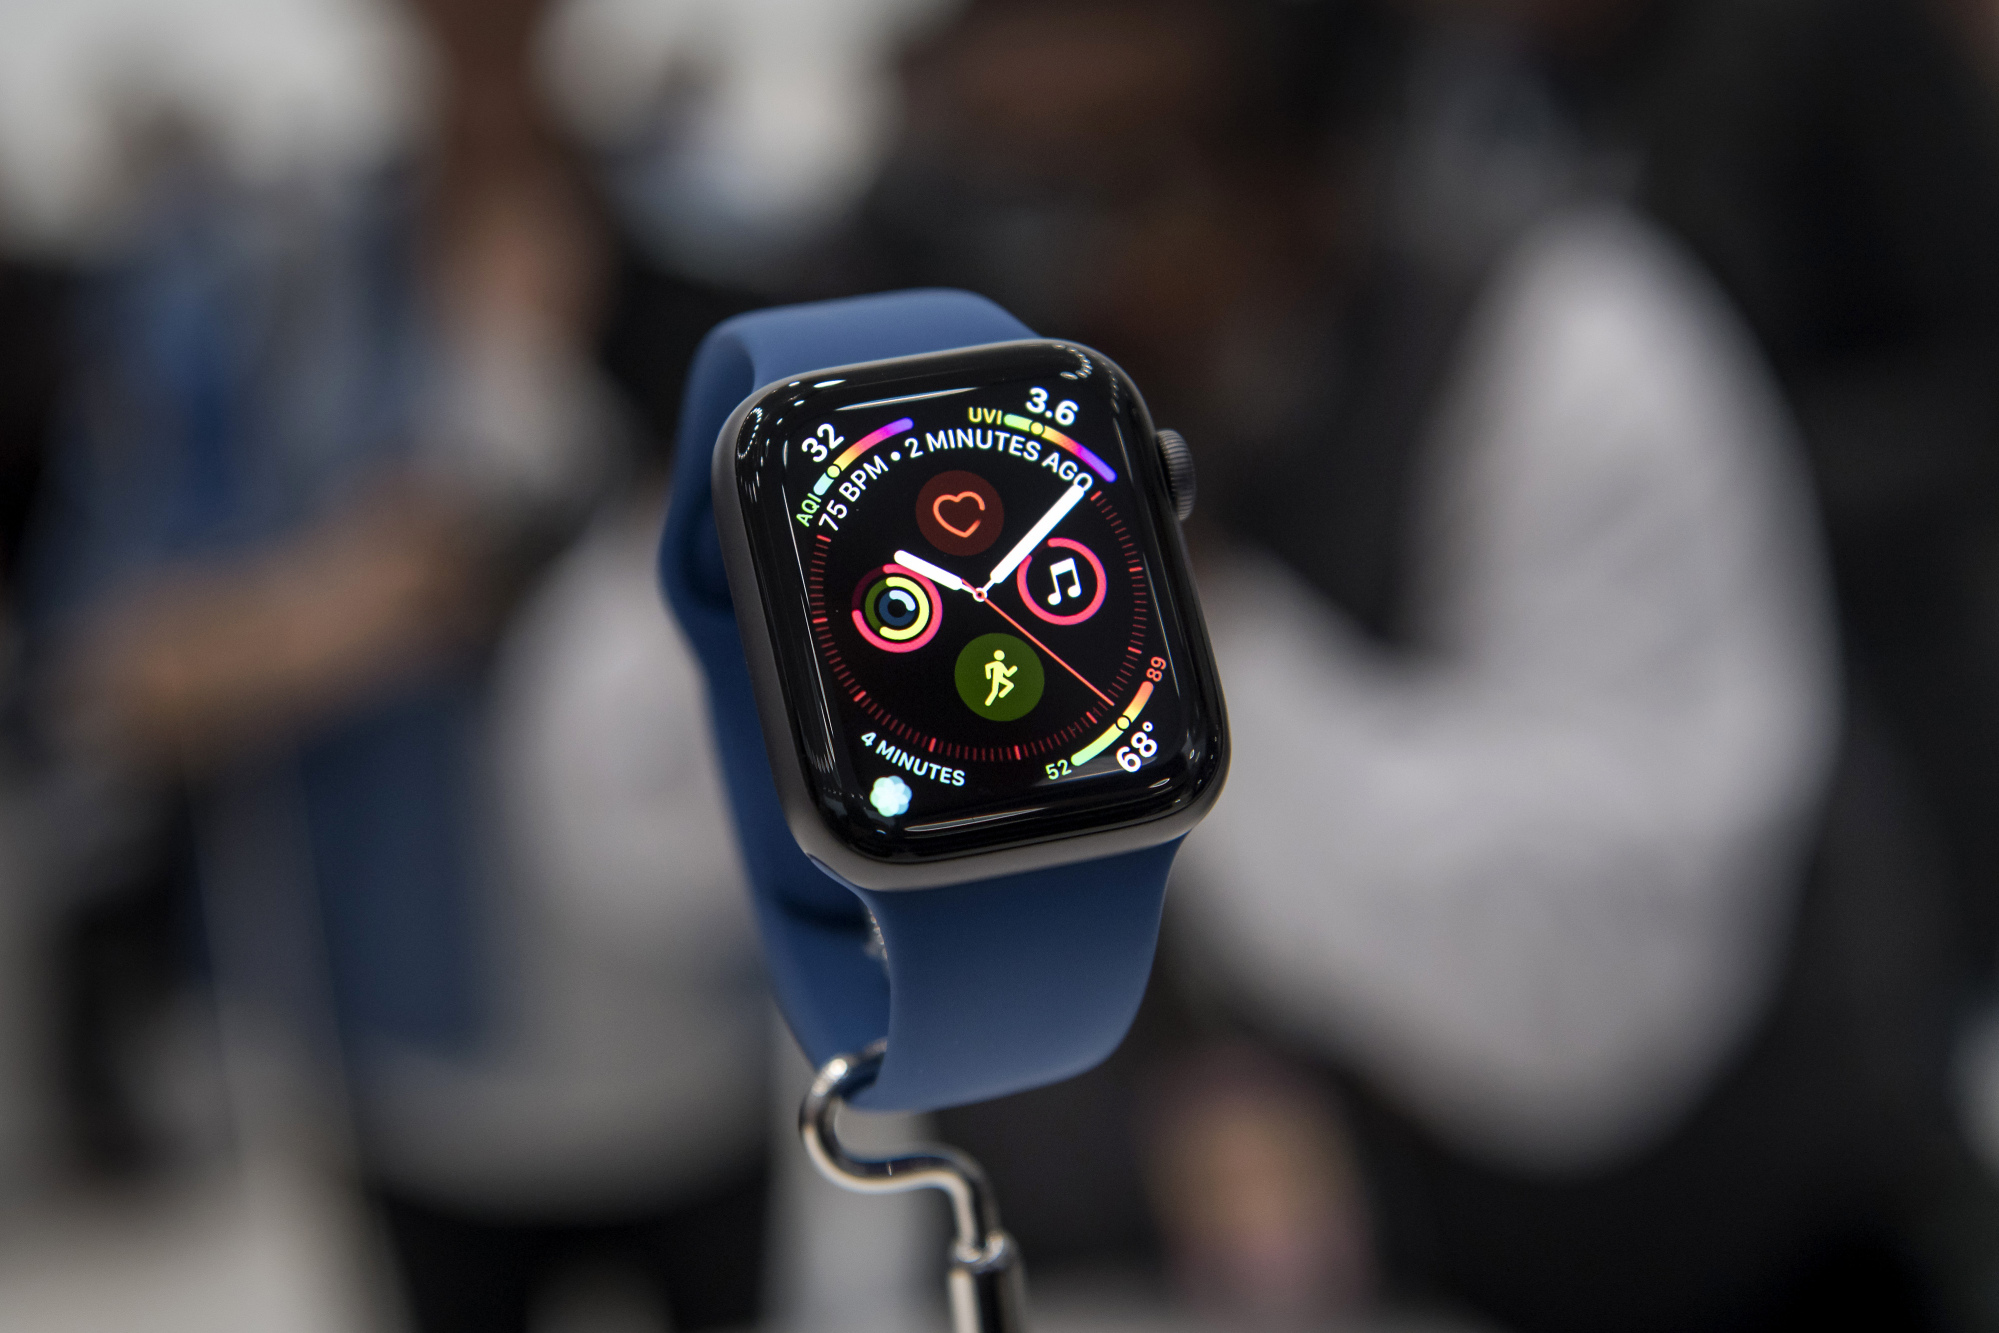 Apple Watch Should Pave Way for More Medical Gadgets, FDA Says